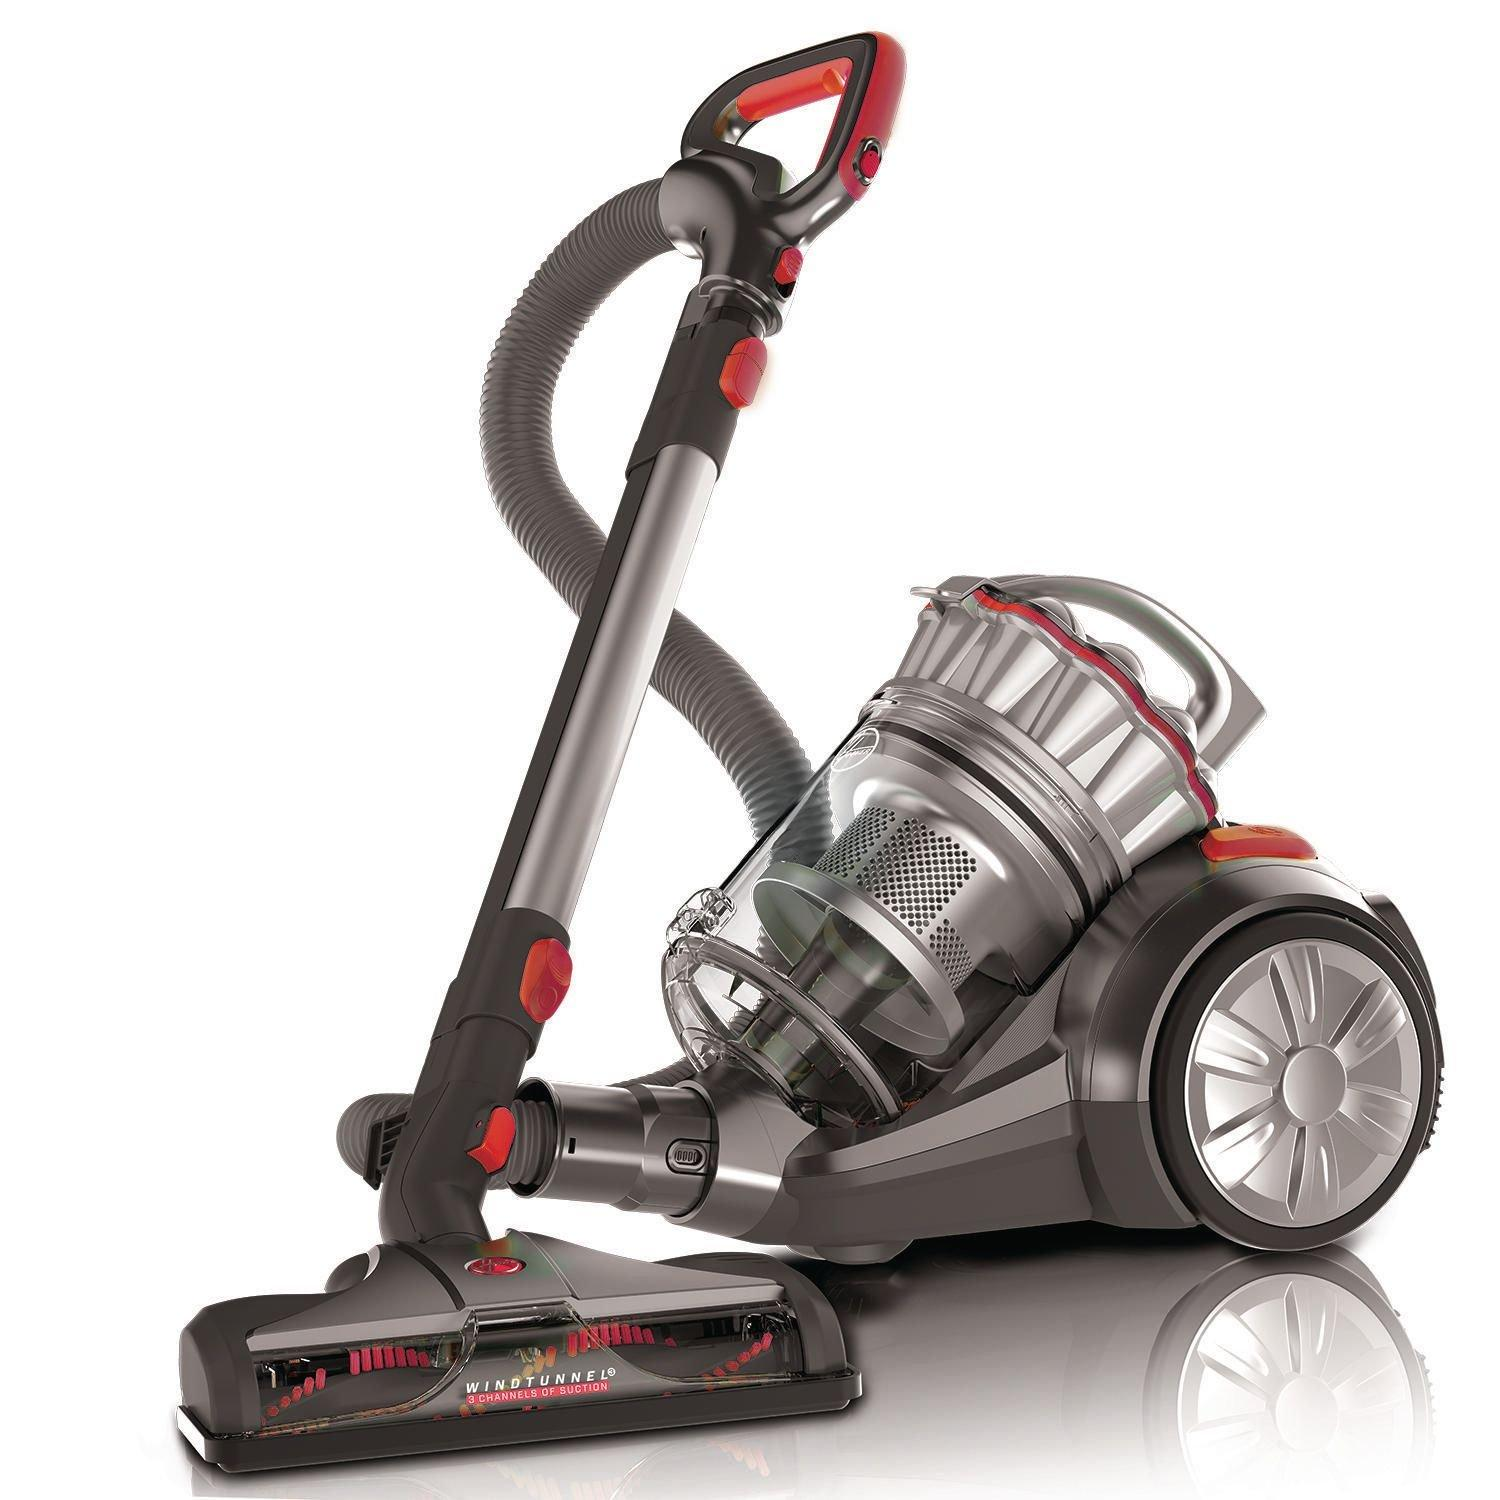 Pro Deluxe Canister Vacuum Cleaner